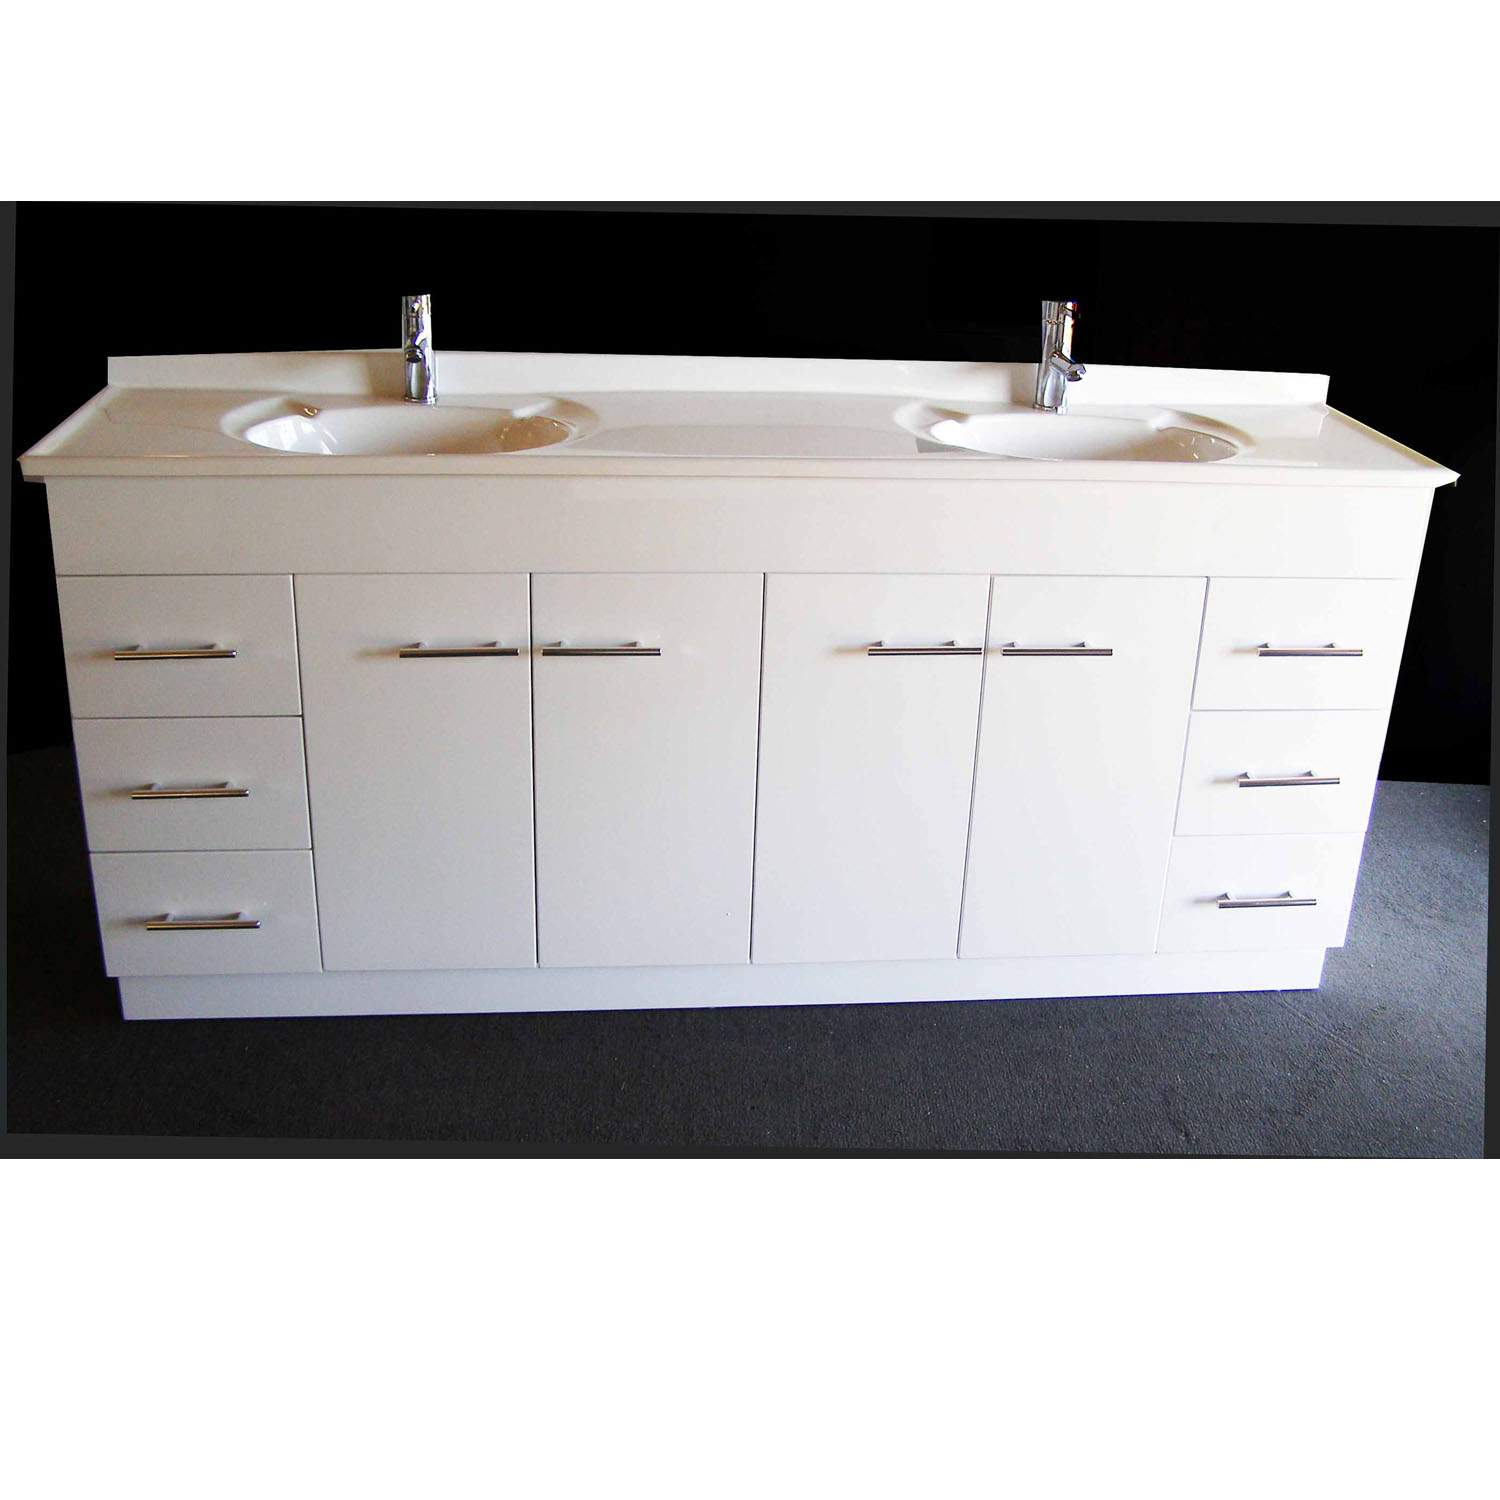 Bathroom Vanities Australian Made With Elegant Pictures In Singapore